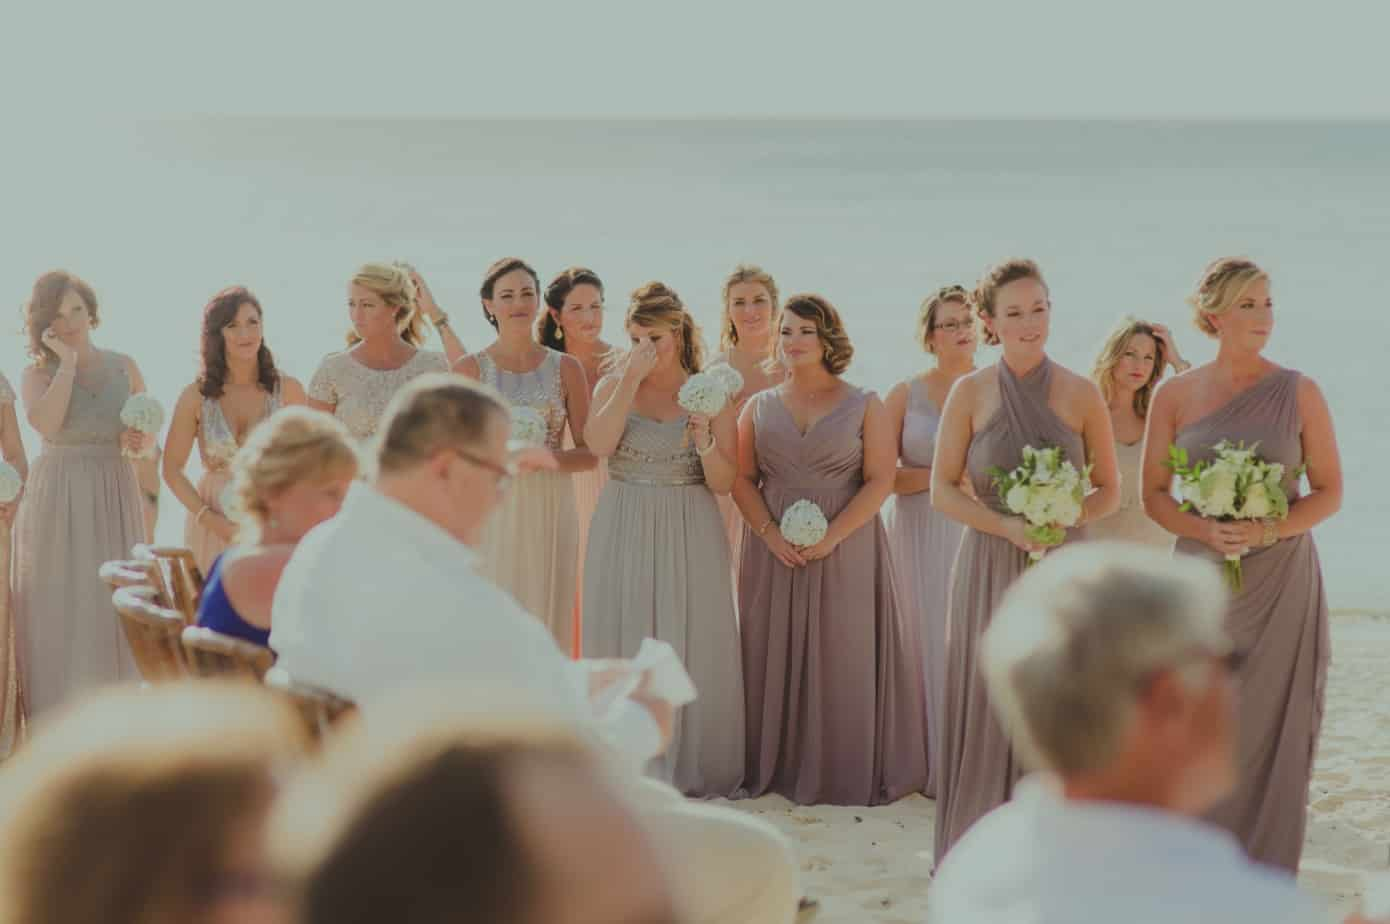 wedding-ceremony-bridesmaids-celebrations-ltd-cayman-islands-destination-wedding-2